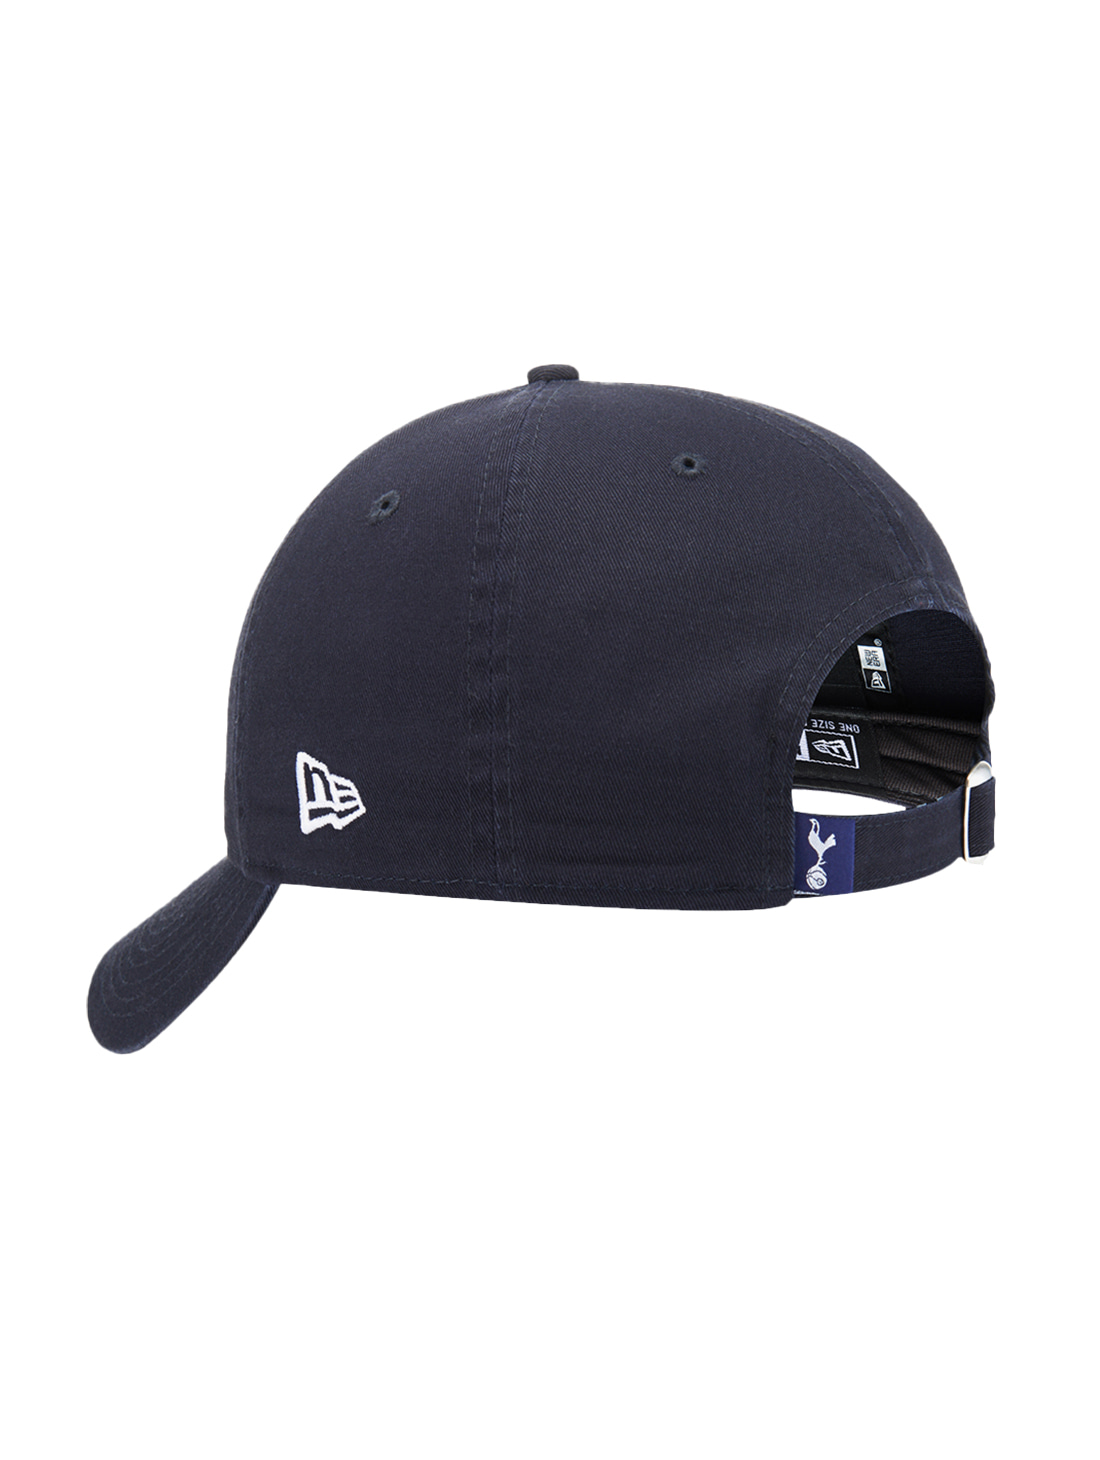 (Sold Out) TOTTENHAM 940UNST BALL CAP - NAVY